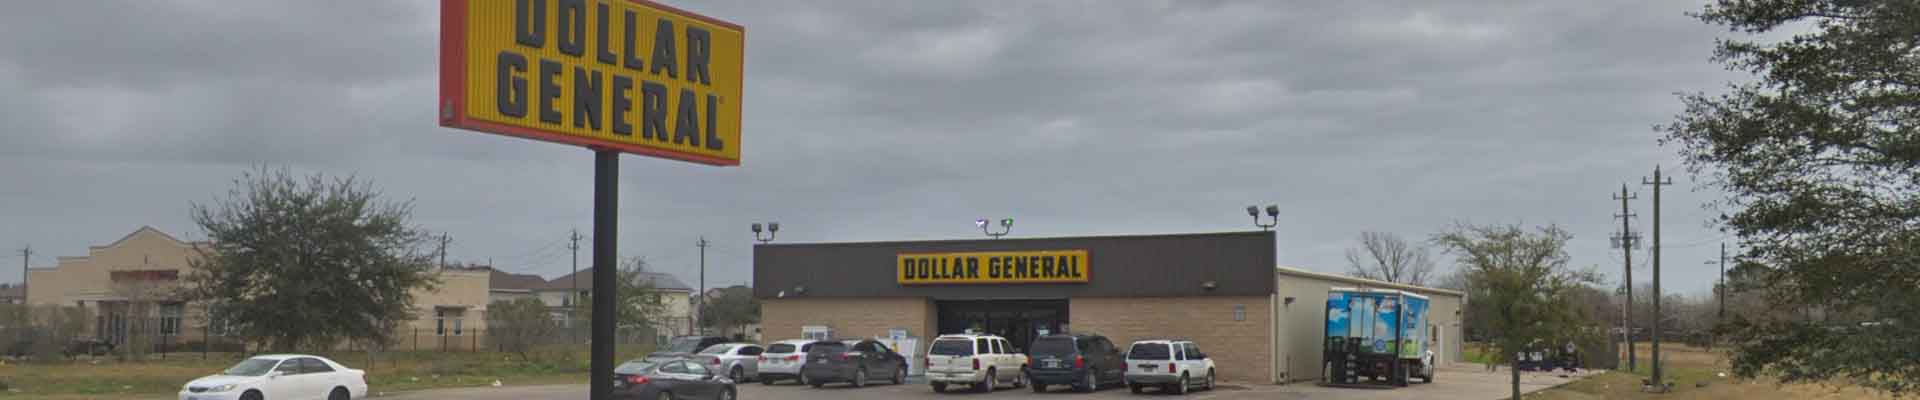 Dollar General (7503) – Houston, Texas